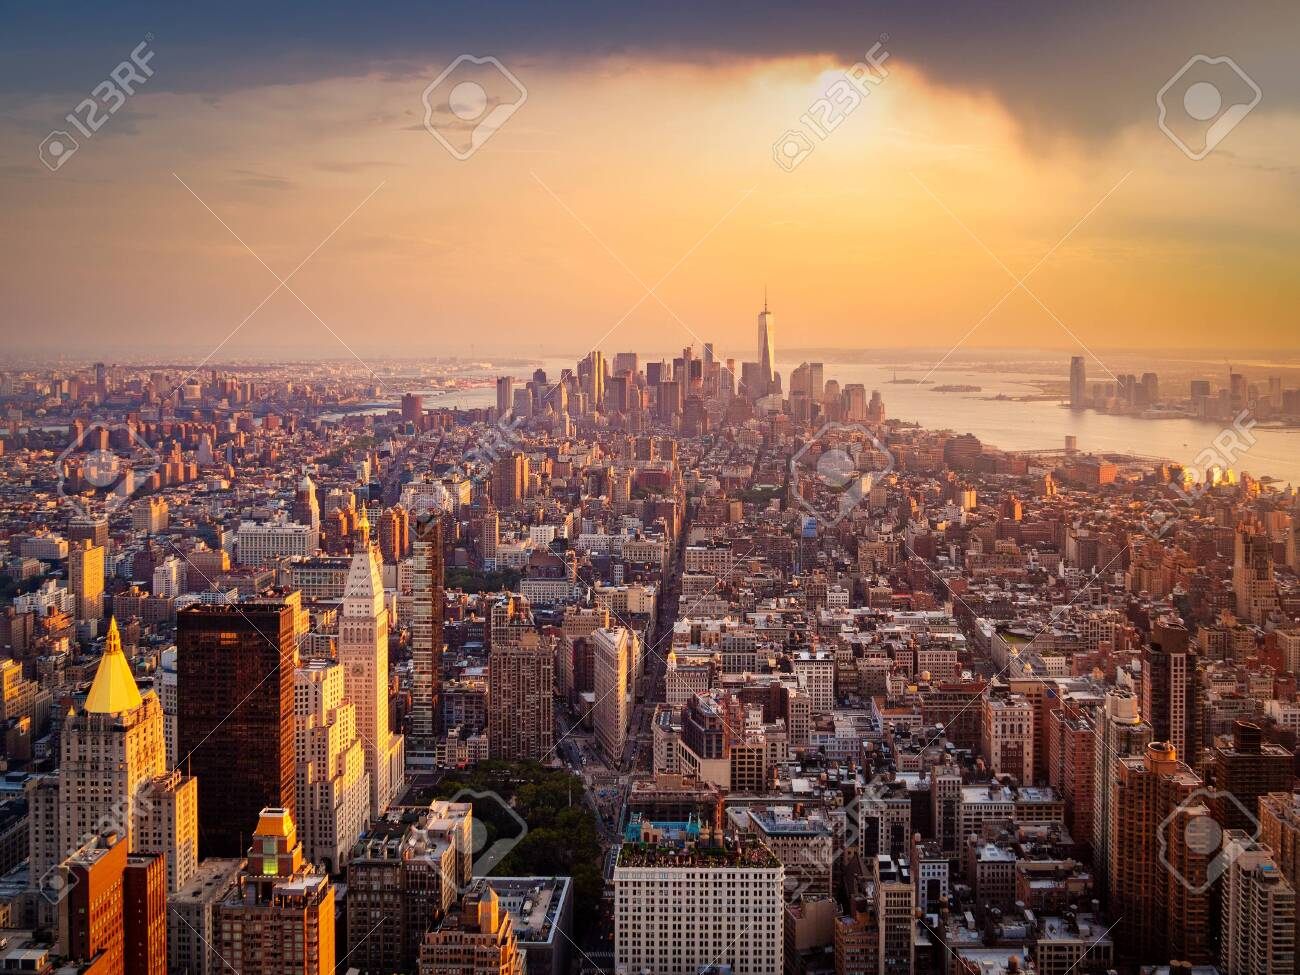 Aerial view of New York City illuminated by the rising sun - 146350920